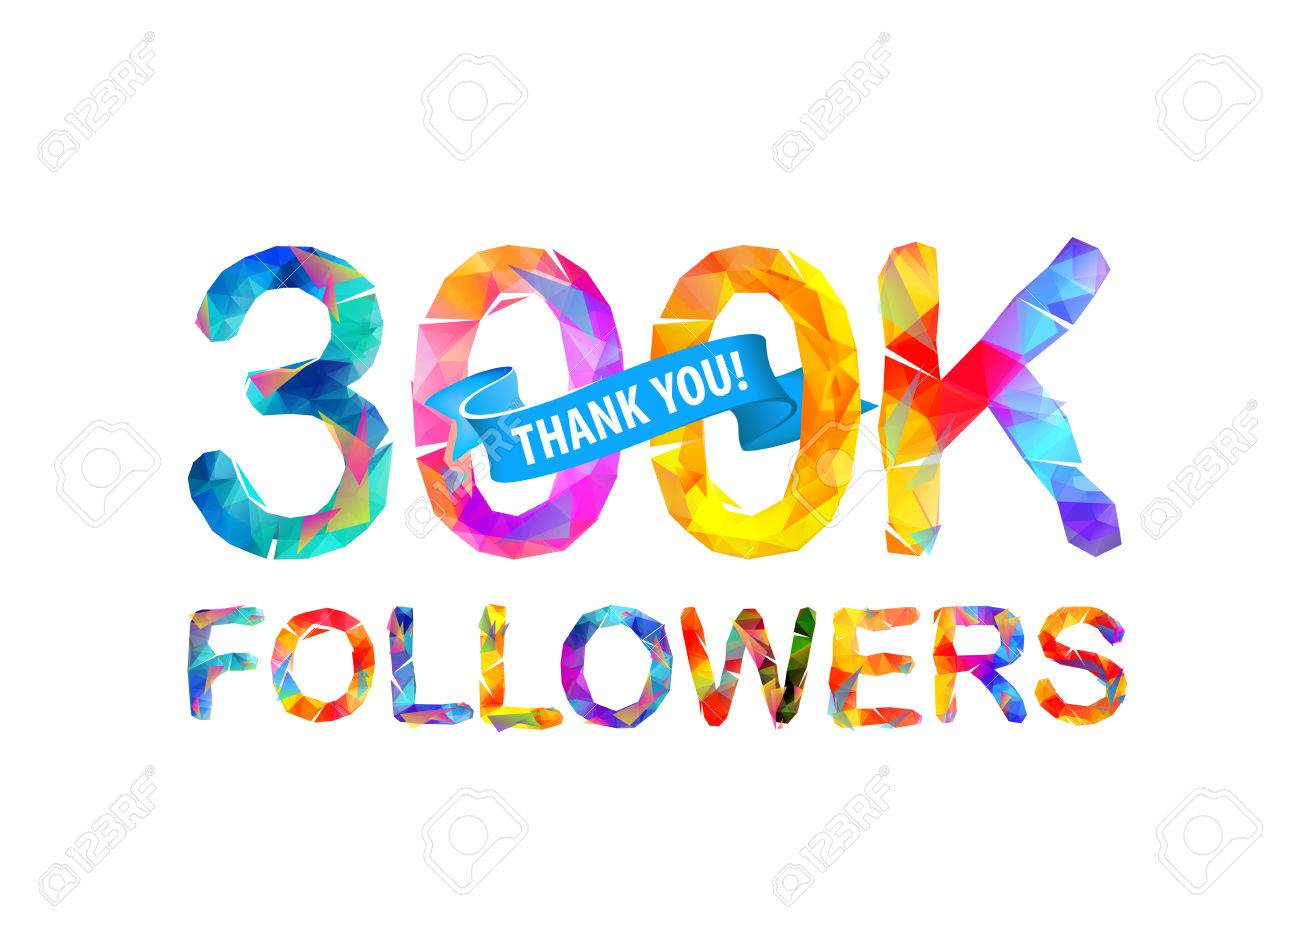 300K (three hundred thousand) followers. Thank you! Triangular vector  letters. Stock